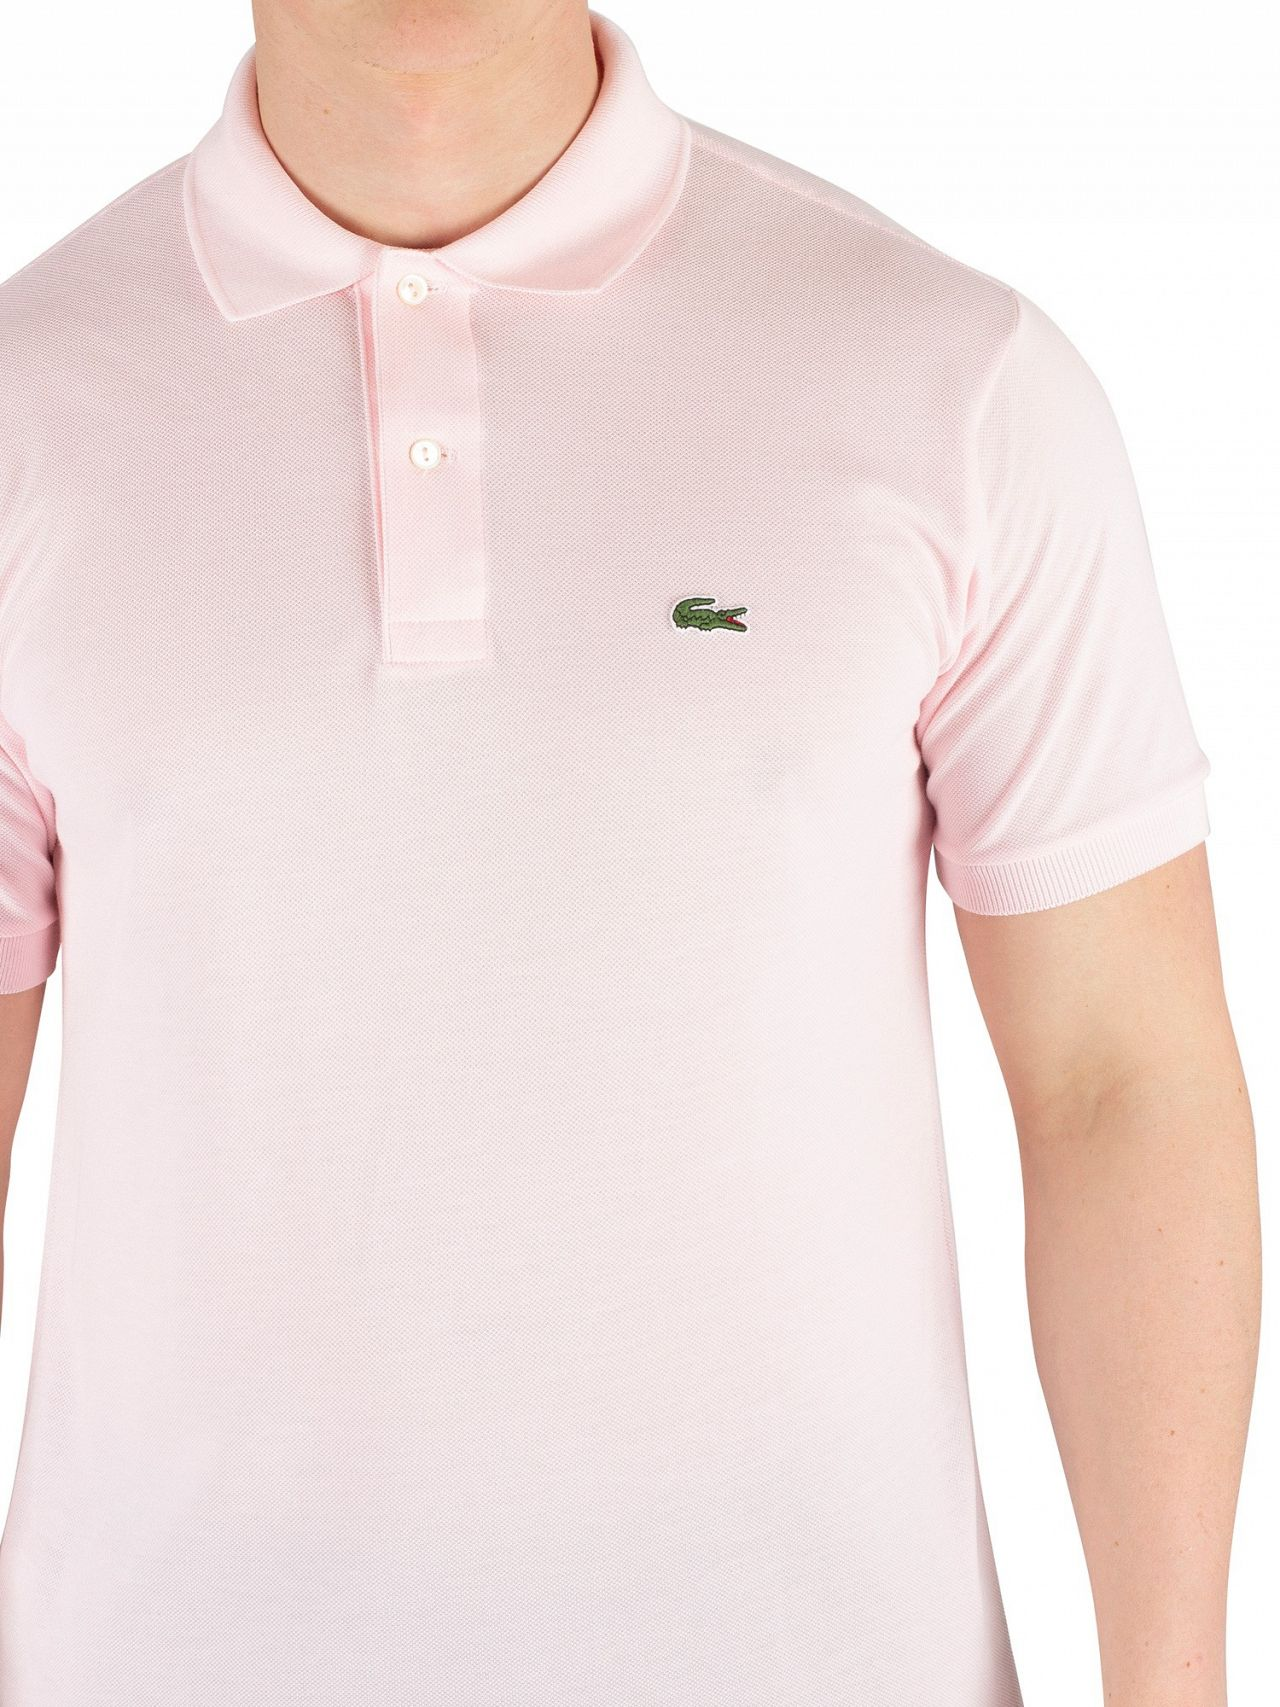 16f8cb5f255 Lacoste Pink Classic Poloshirt | Standout